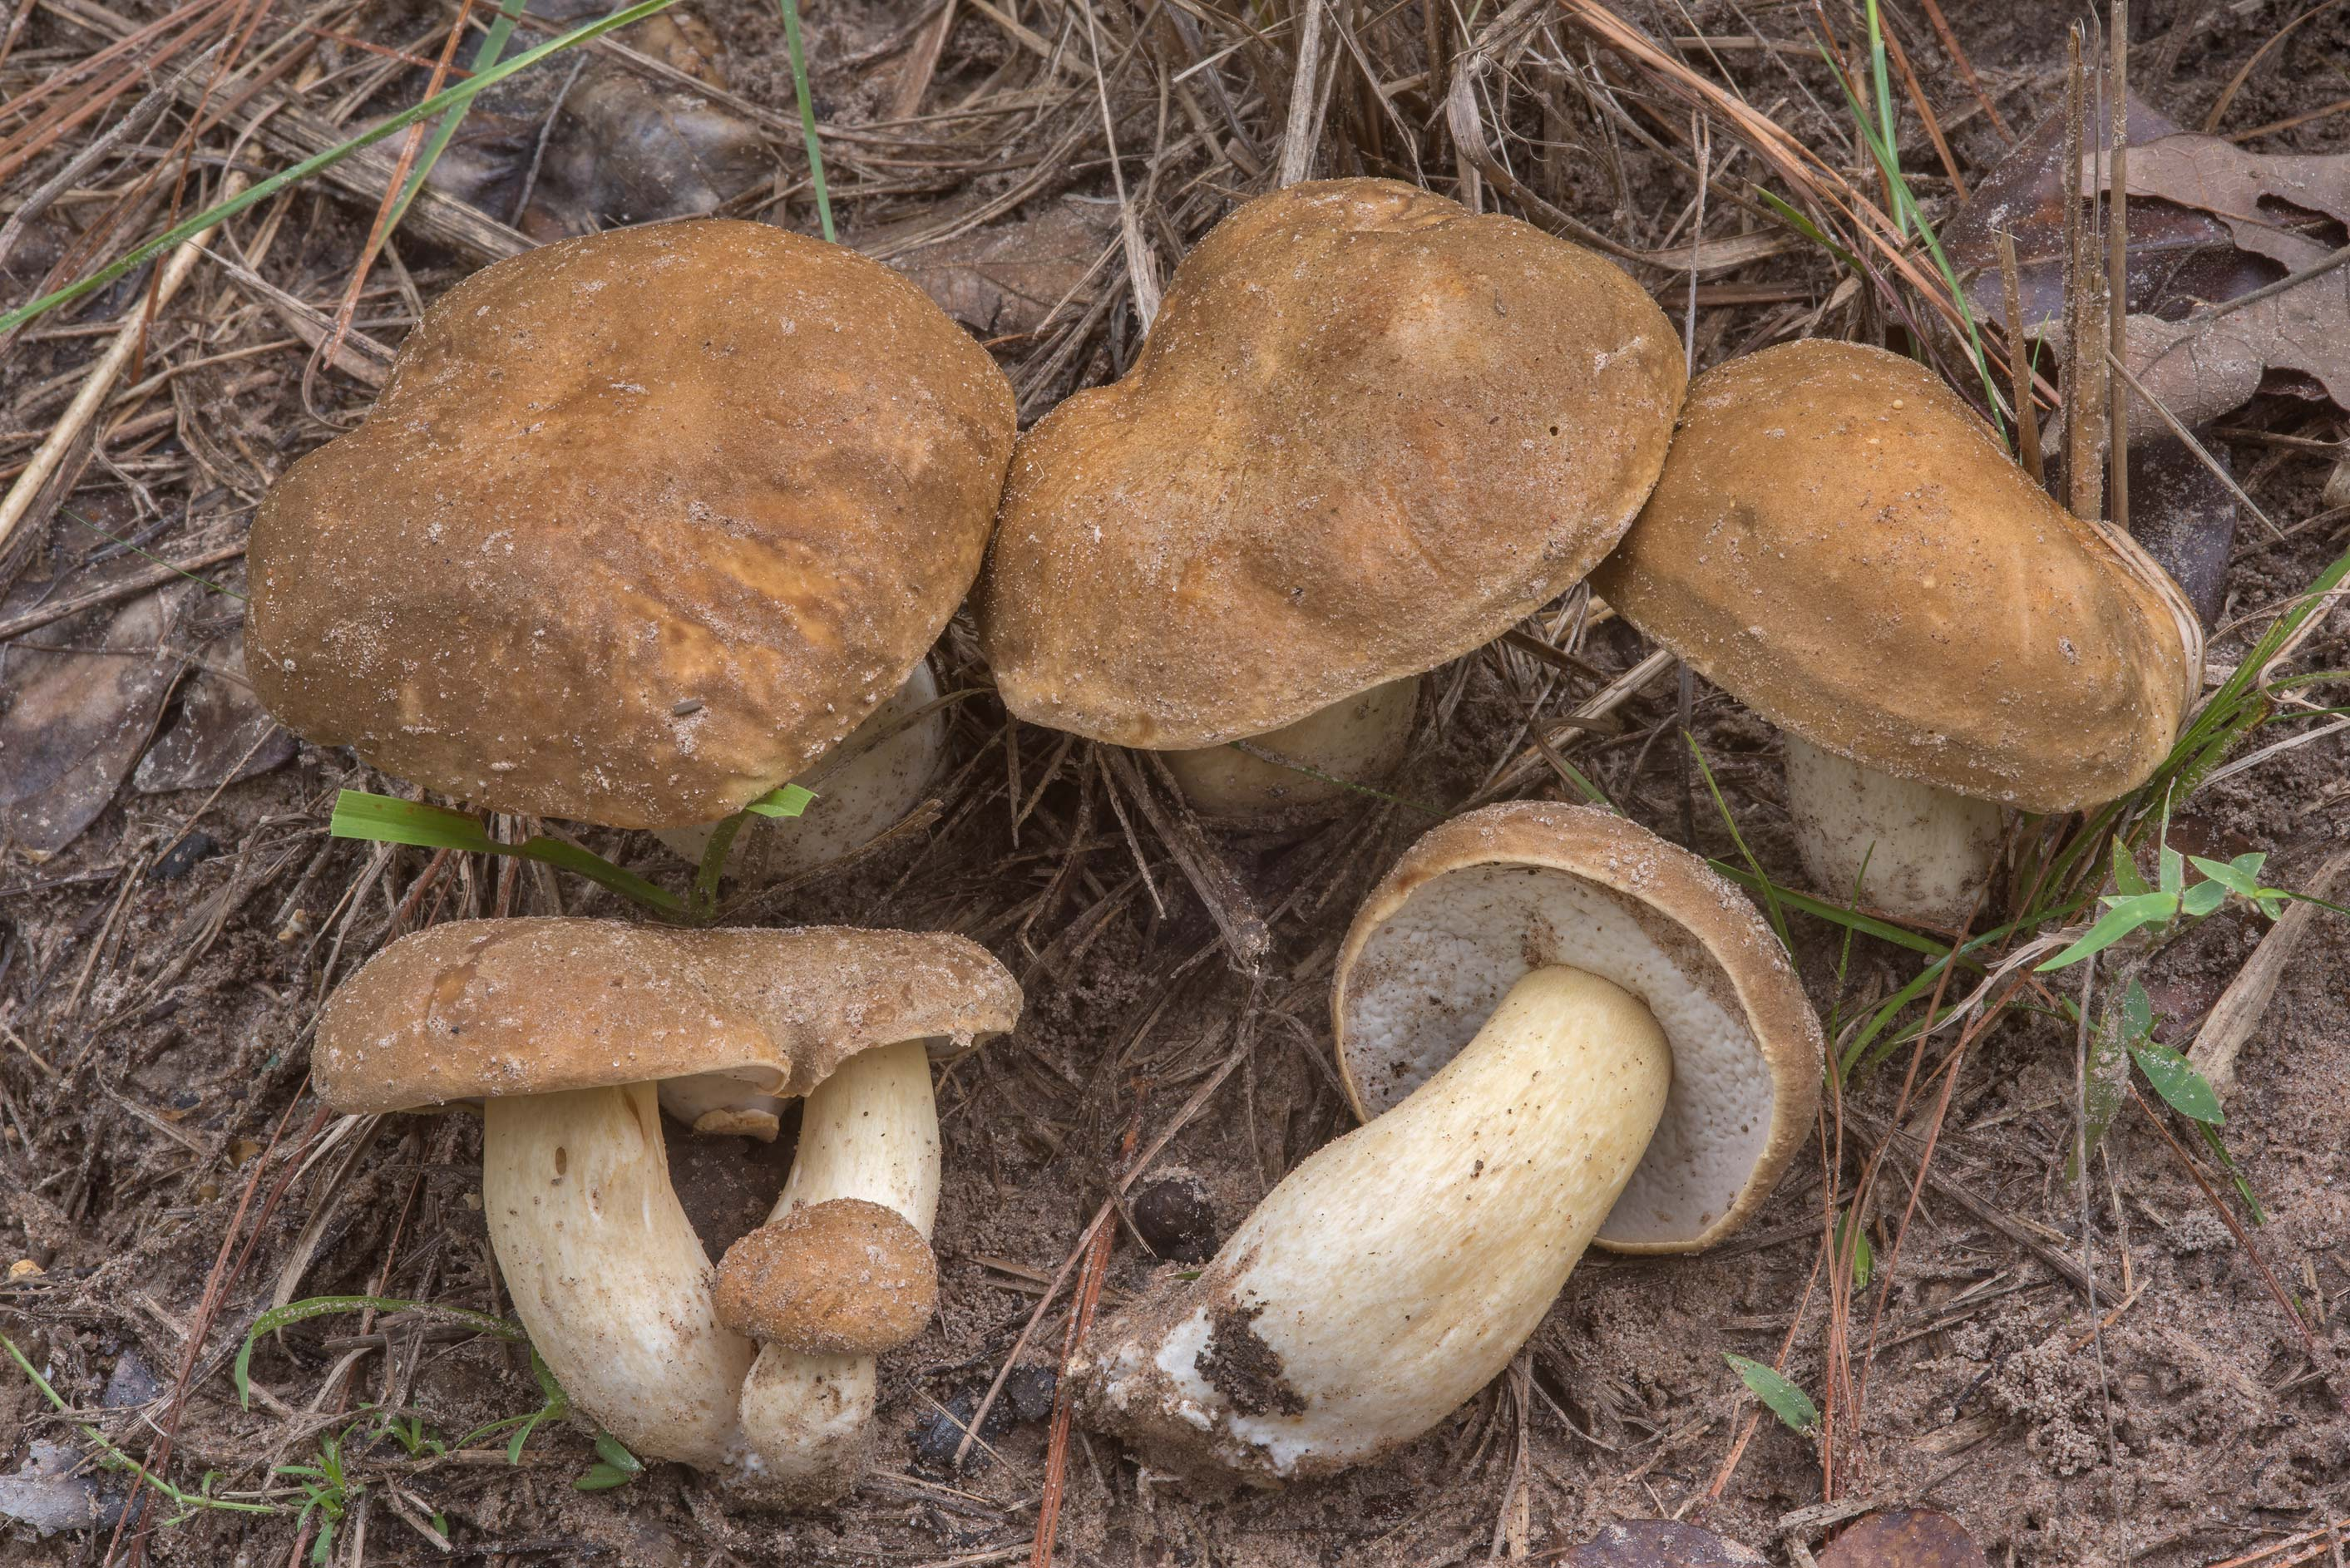 Porcini mushrooms (Boletus edulis group) on...National Forest. Richards, Texas